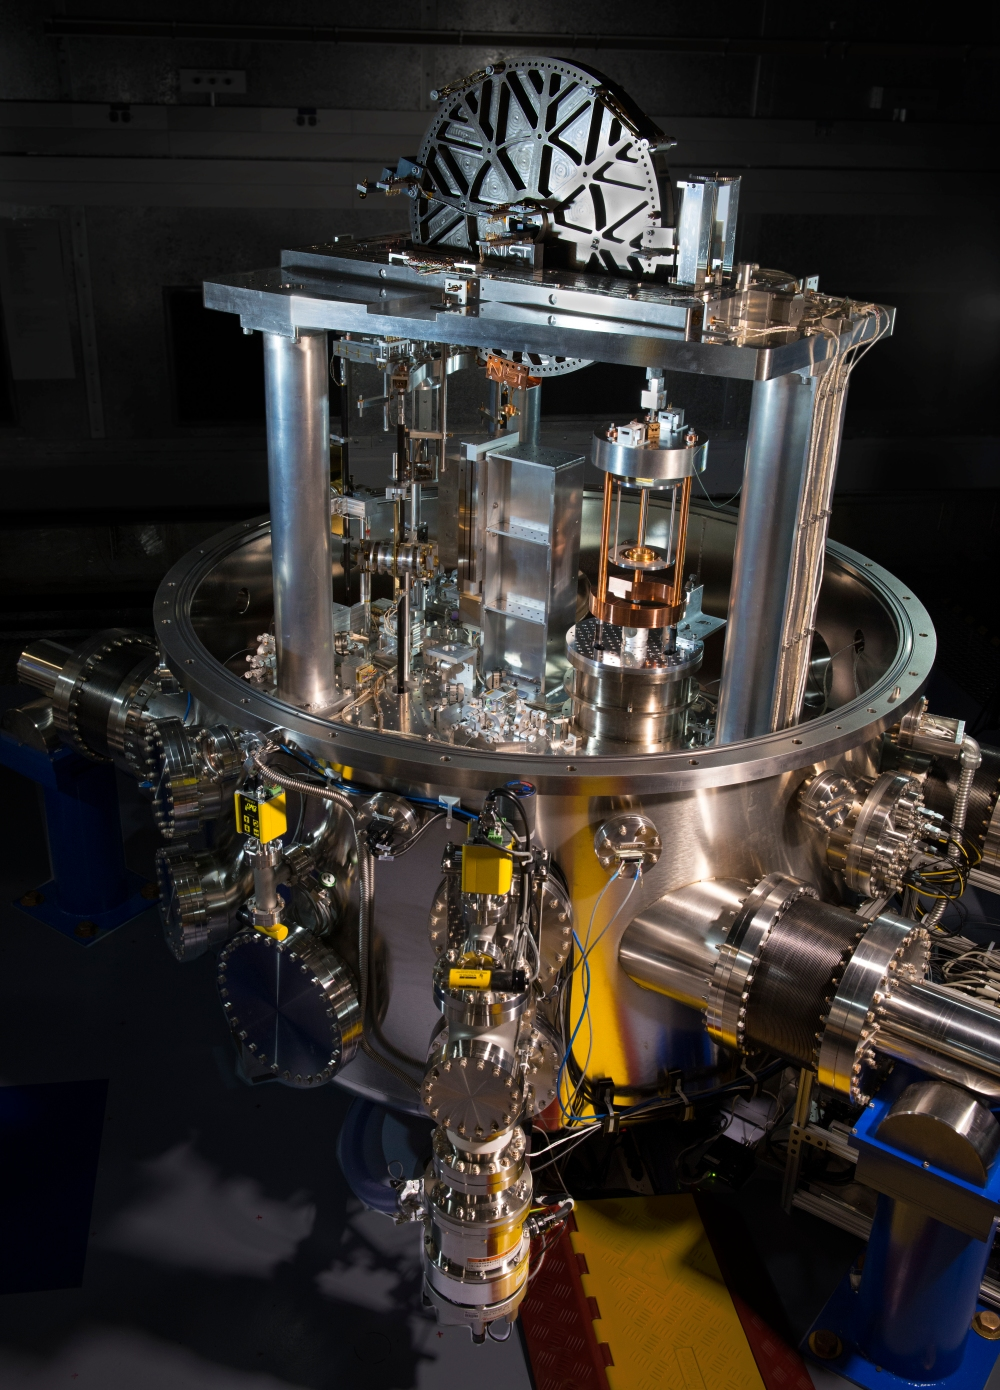 The NIST-4 watt balance has measured Planck's constant to within 34 parts per billion, demonstrating that the high-tech scale is accurate enough to assist with 2018's planned redefinition of the kilogram. Credit: J.L. Lee / NIST URL [http://nist.gov/pml/div684/nist-newest-watt-balance-brings-world-one-step-closer-to-new-kilogram.cfm]